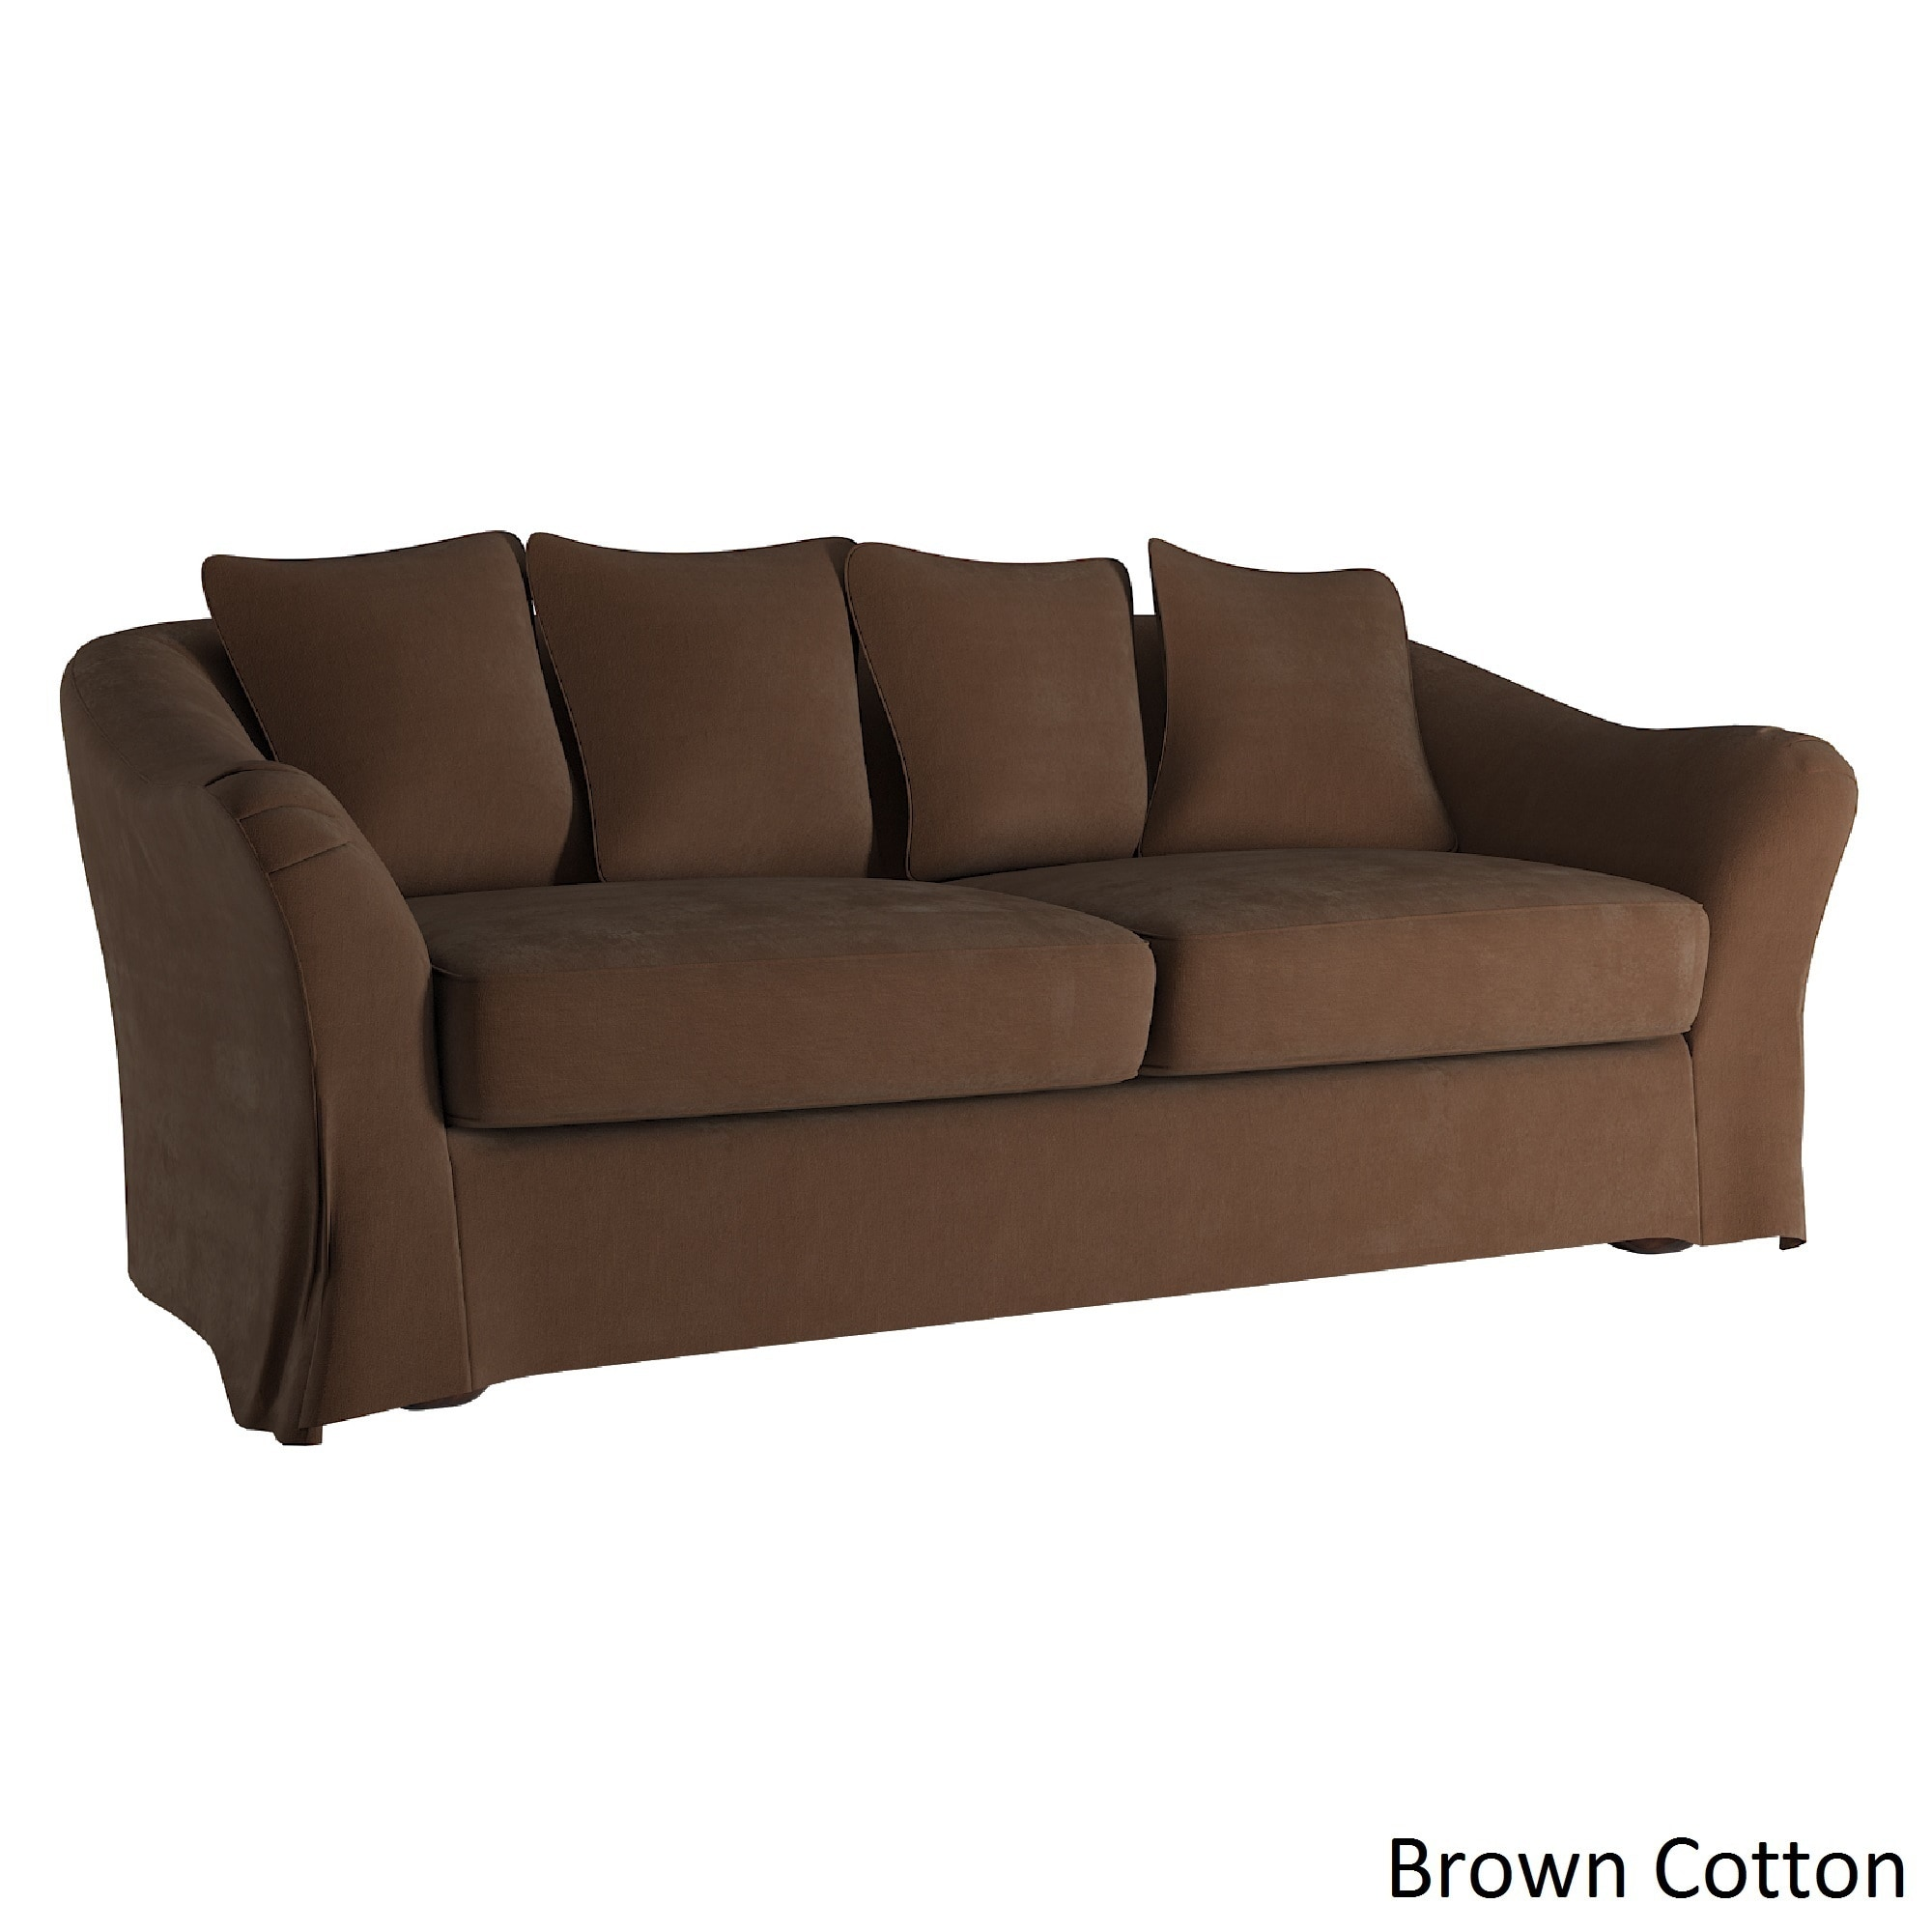 Feather Down Sofa Bradly Double Chaise Feather Down